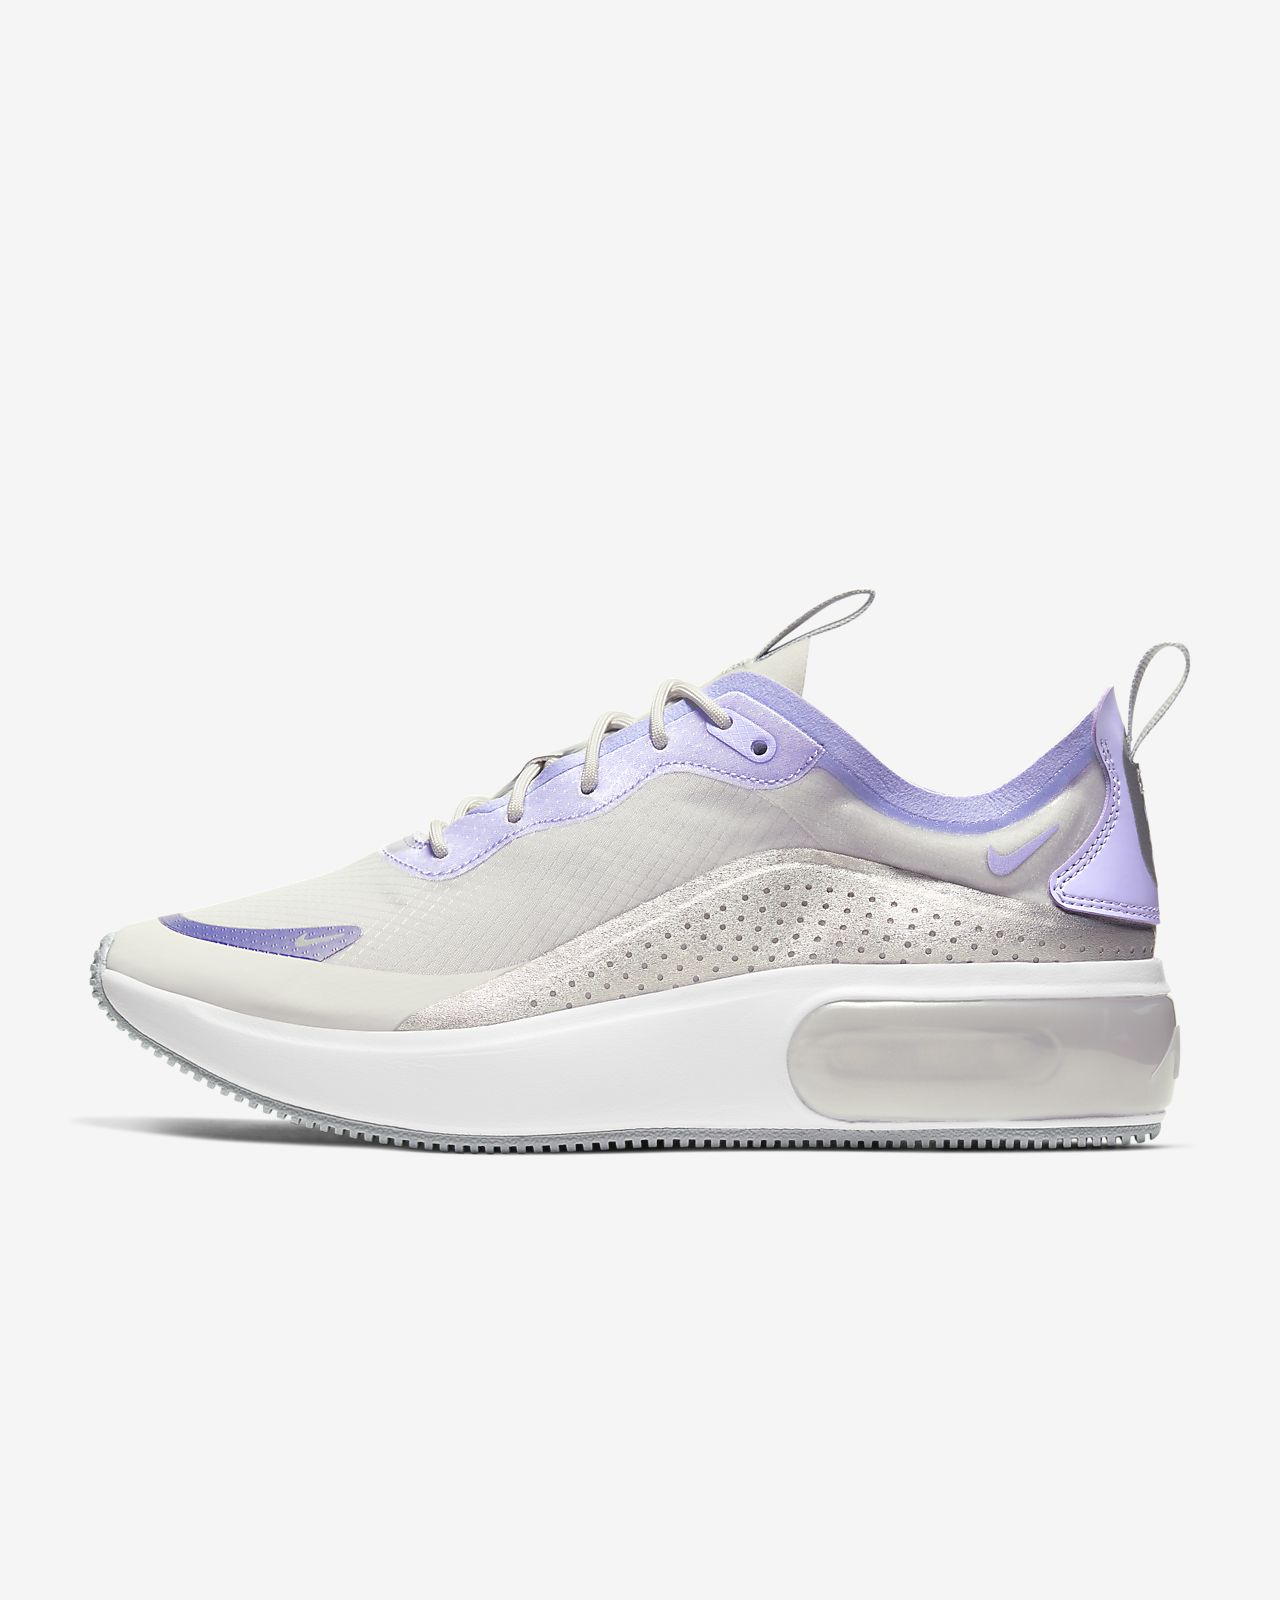 Nike Air Max Dia SE Women's Shoe. Nike MA